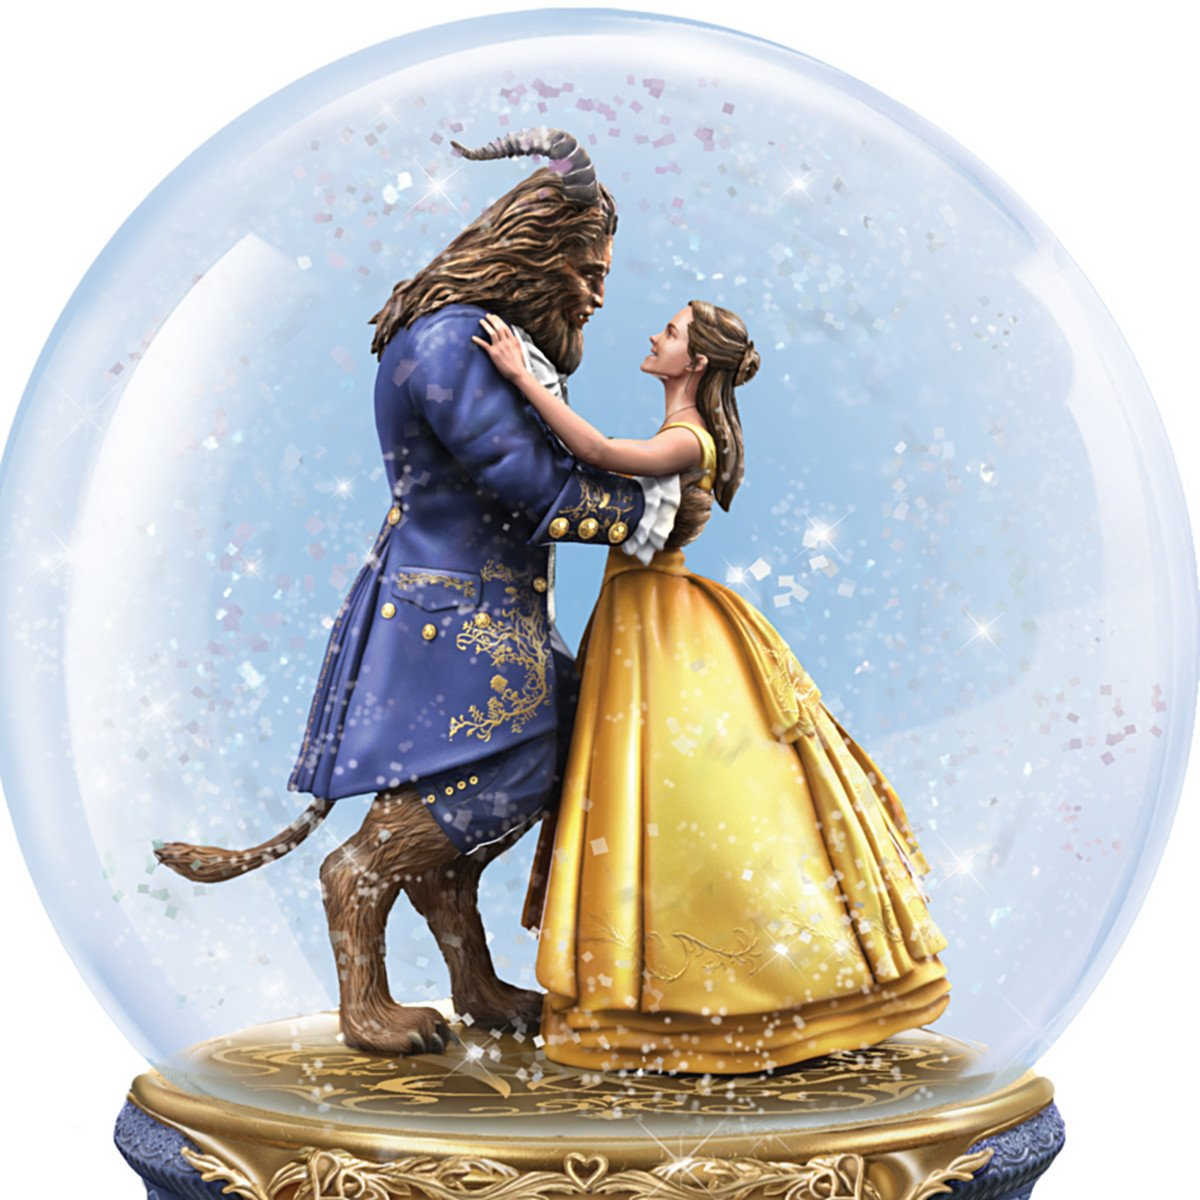 Bradford Exchange The Disney Beauty and the Beast Dance in a Musical Glitter Globe by Bradford Exchange (Image #2)